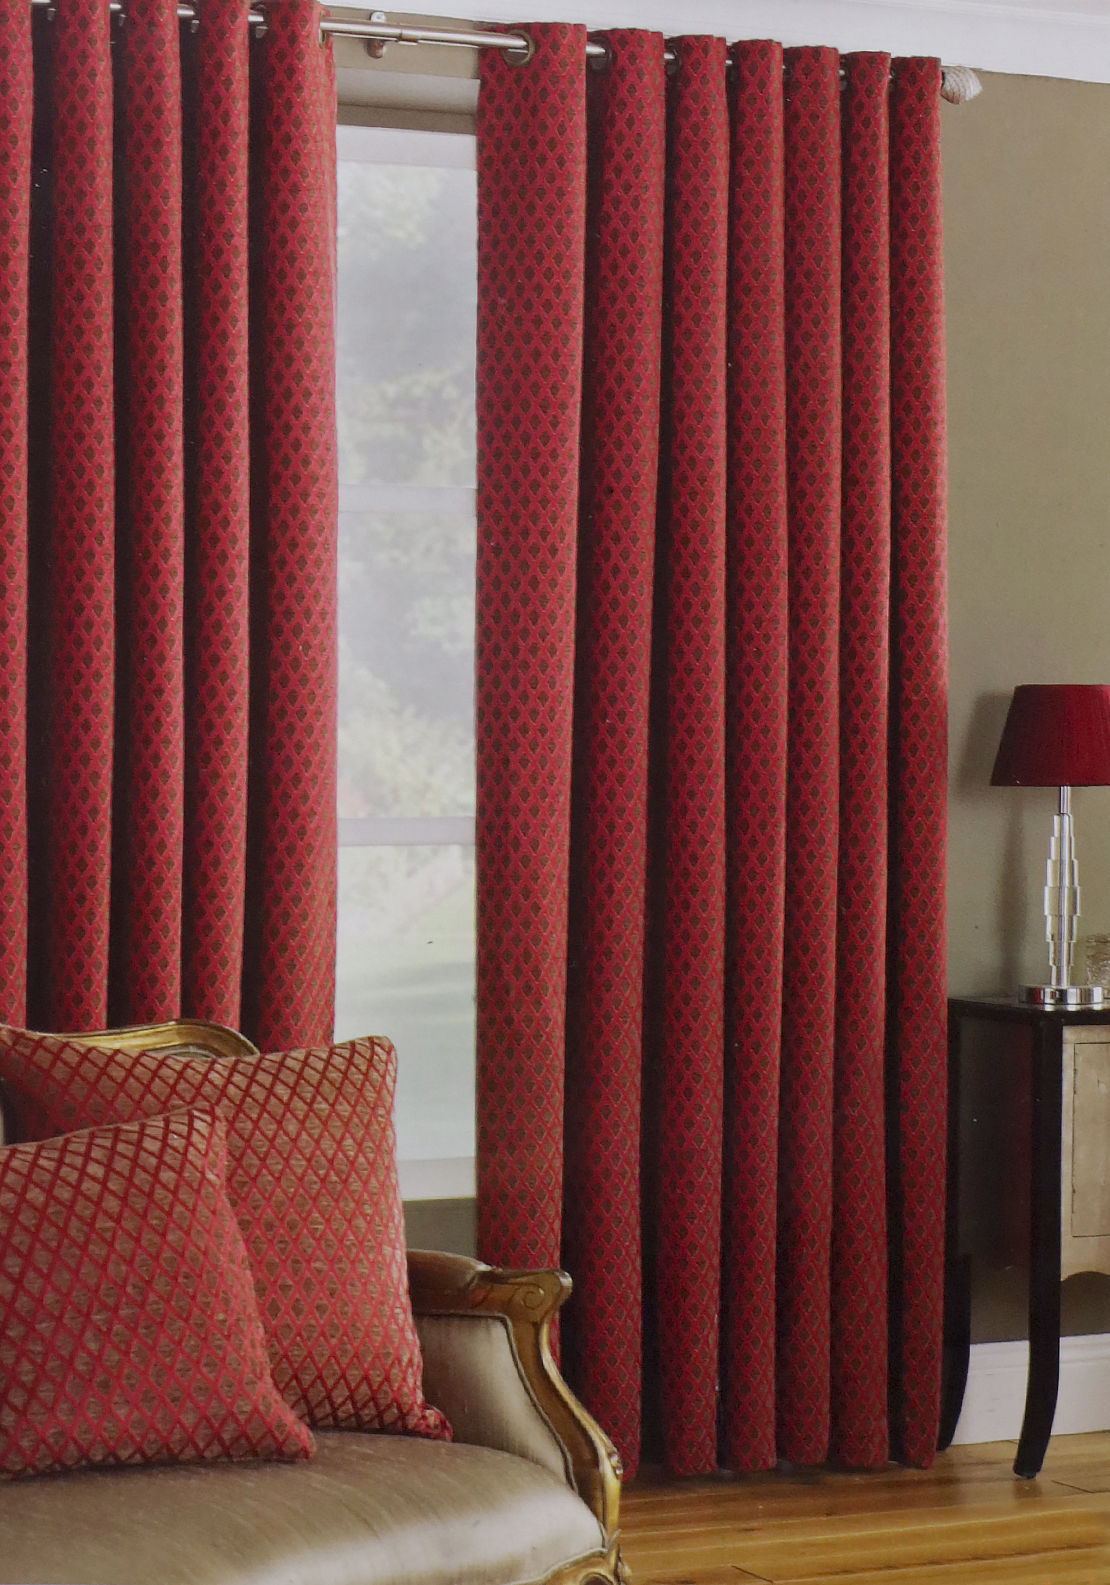 Paoletti De Vere Diamond Print Fully Lined Eyelet Curtains, Burgundy